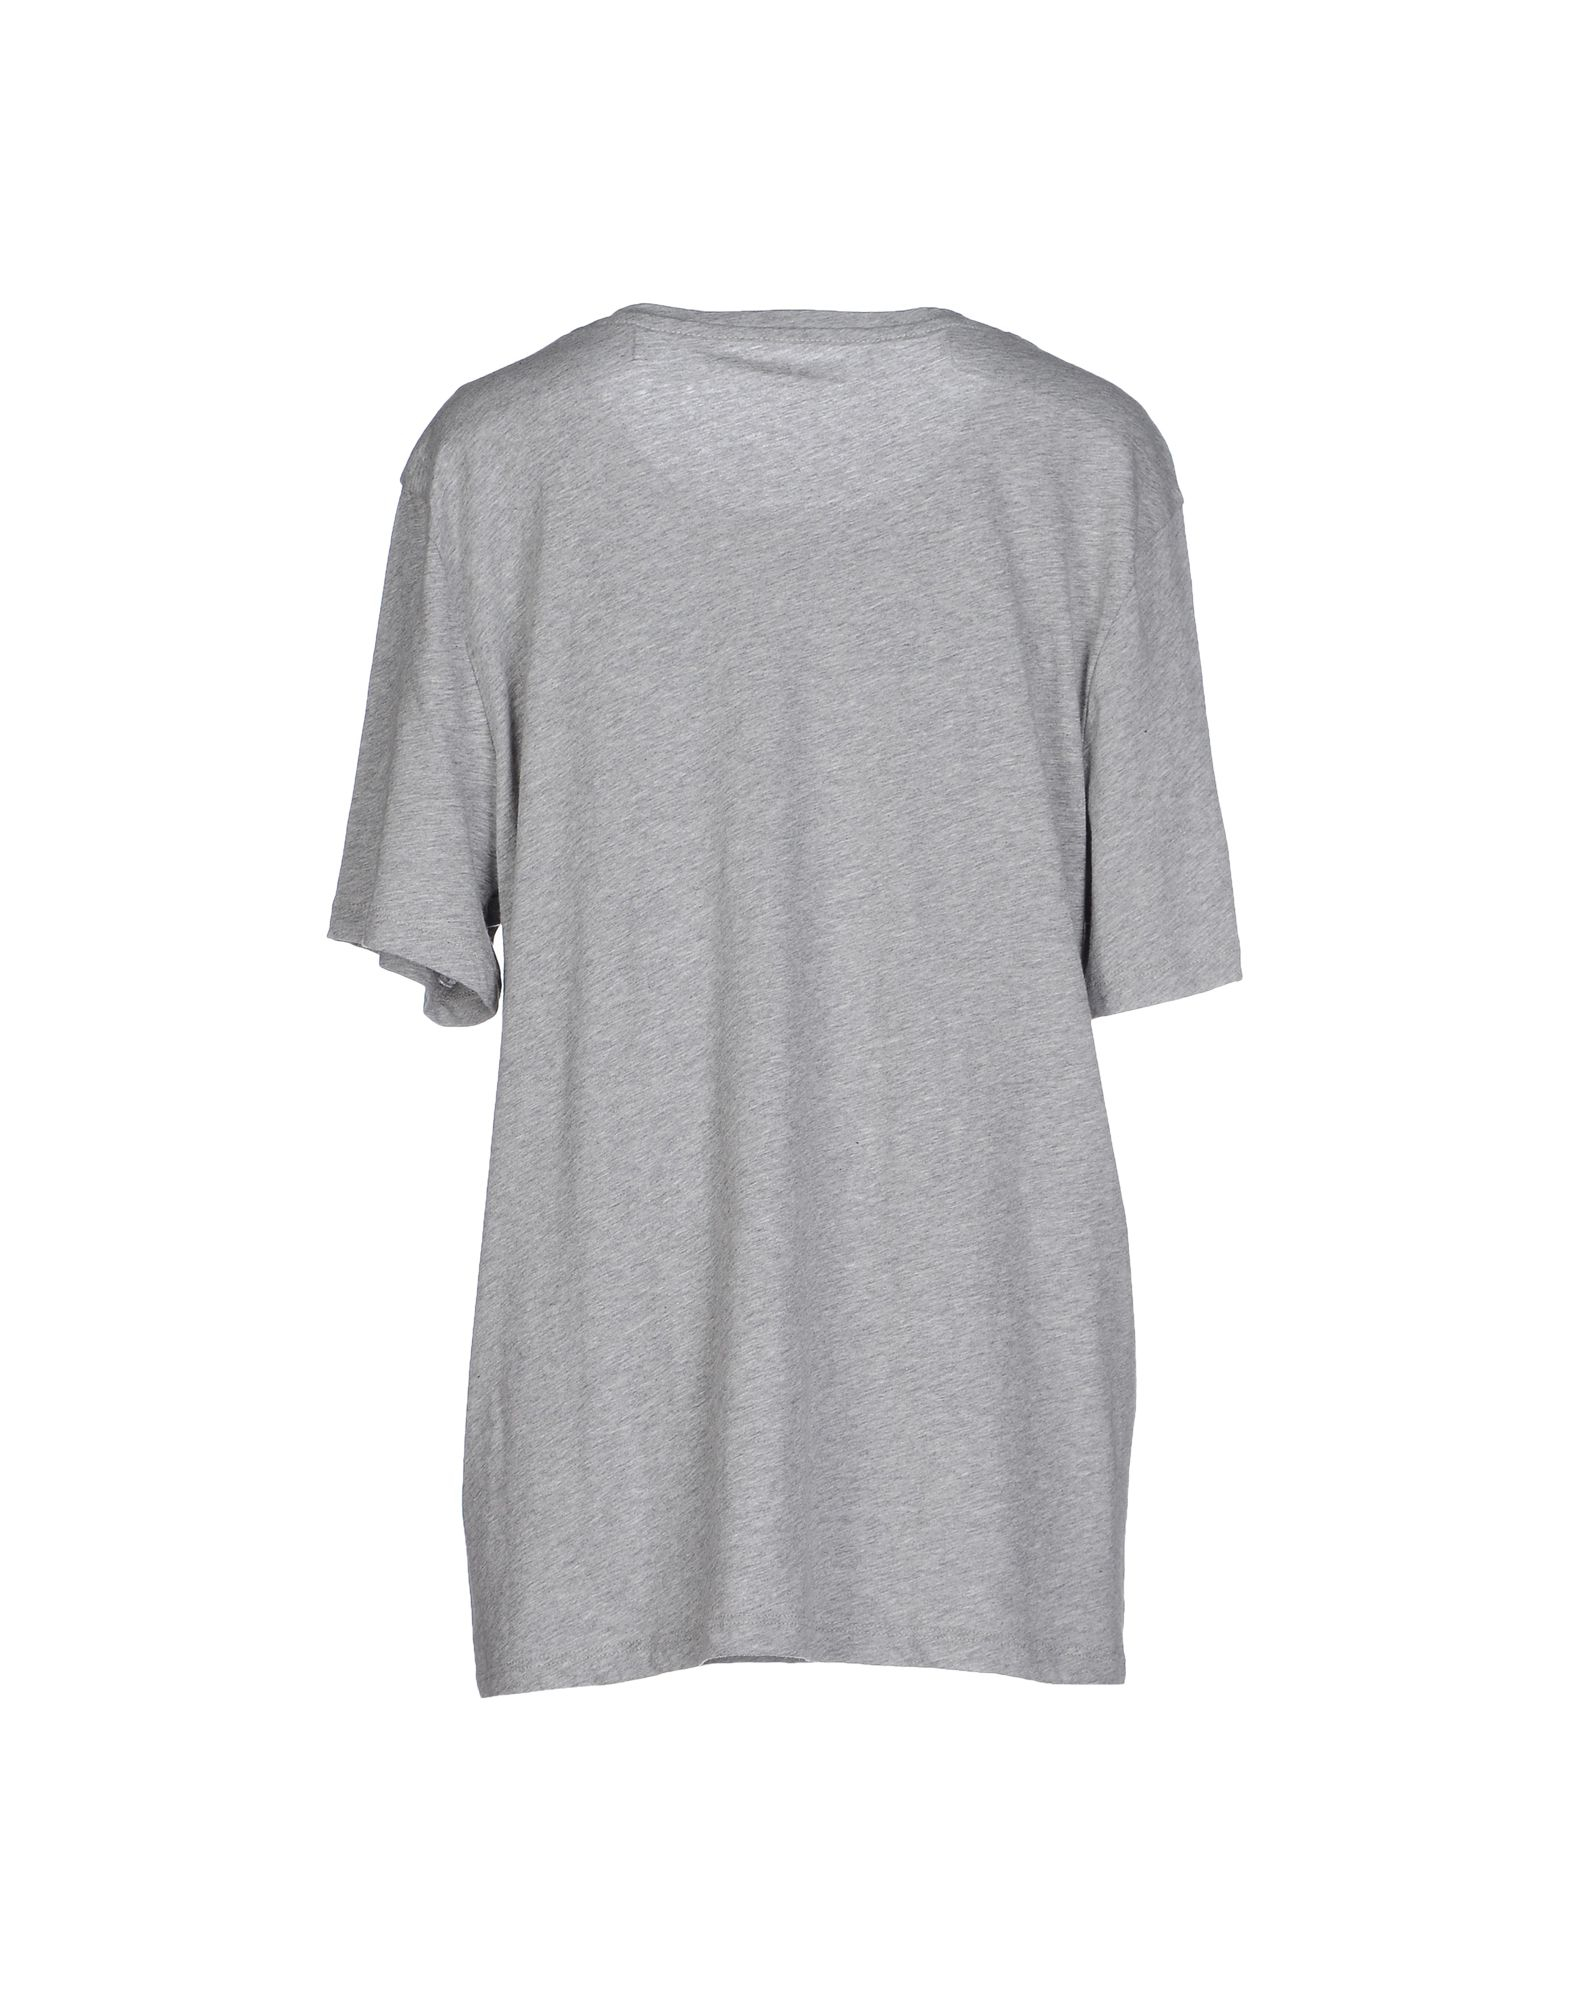 Three Dots T Shirt In Gray For Men Lyst